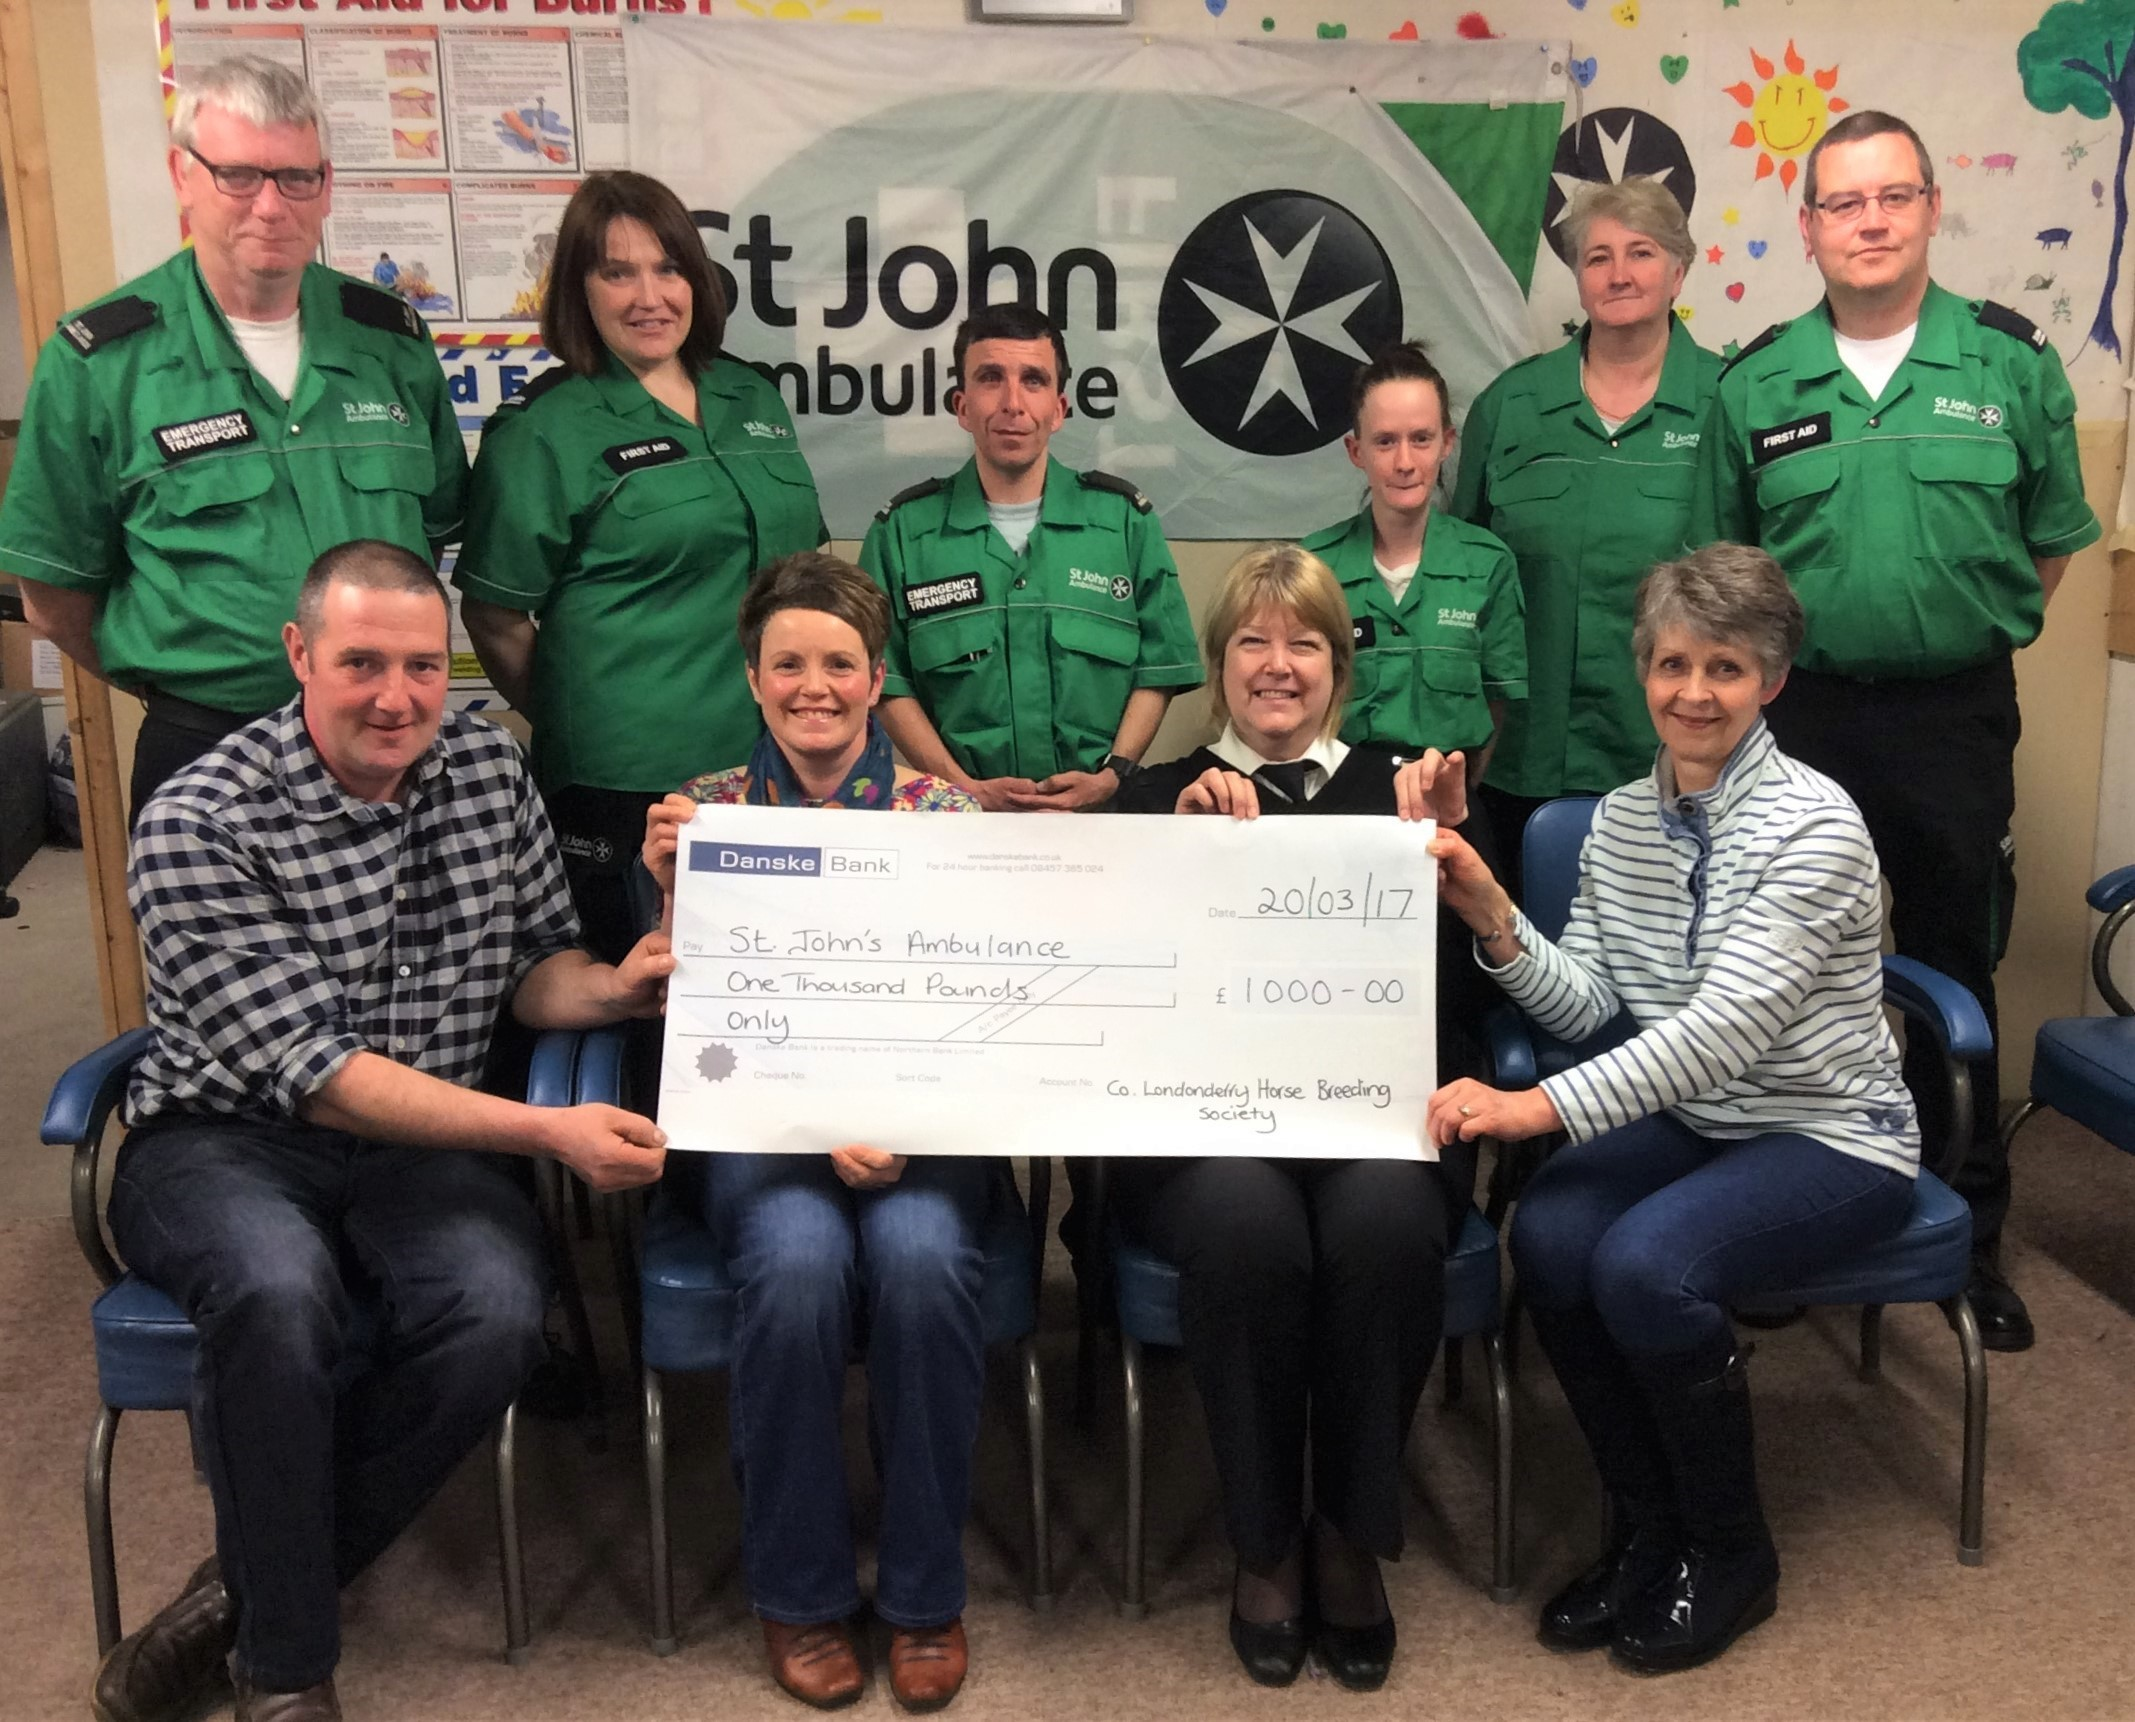 County Londonderry Horse Breeding Society - Charity Presentation -